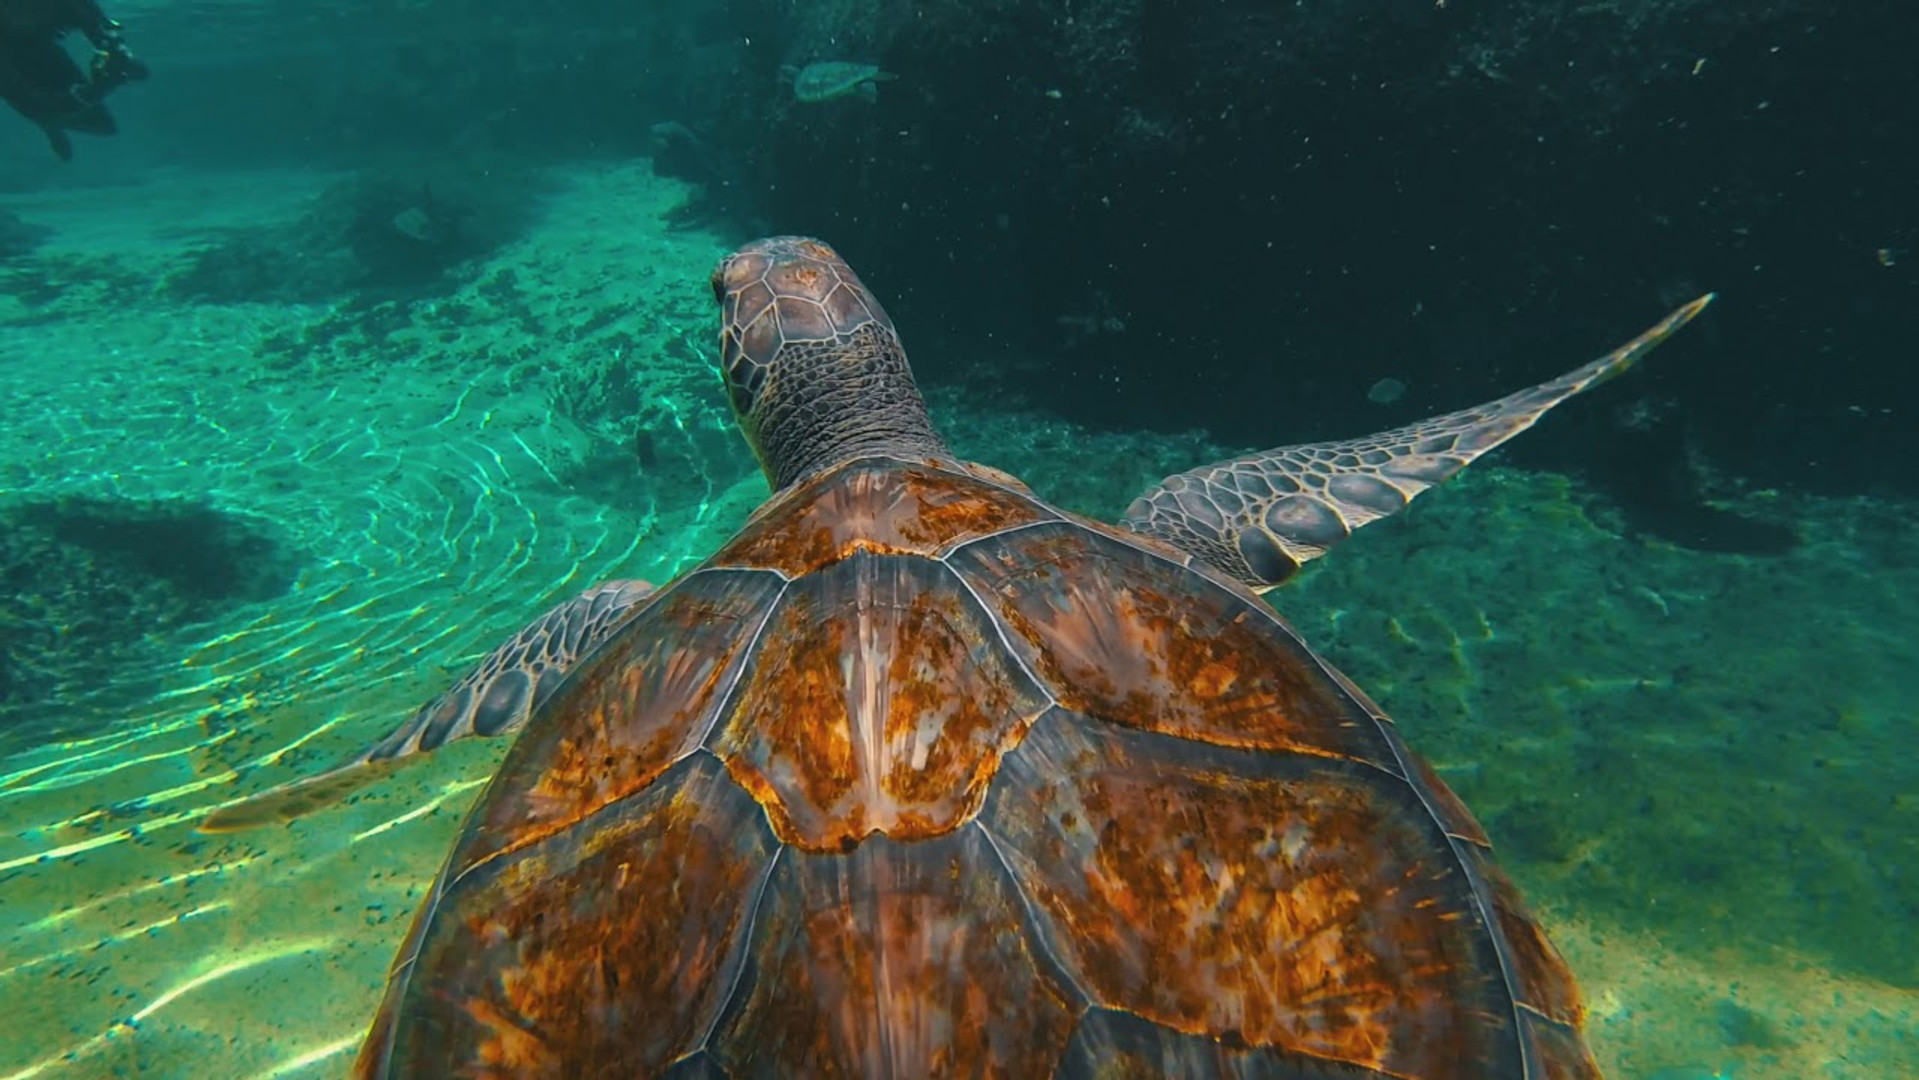 Cayman Turtle Centre - Exhibits & Natural Attractions